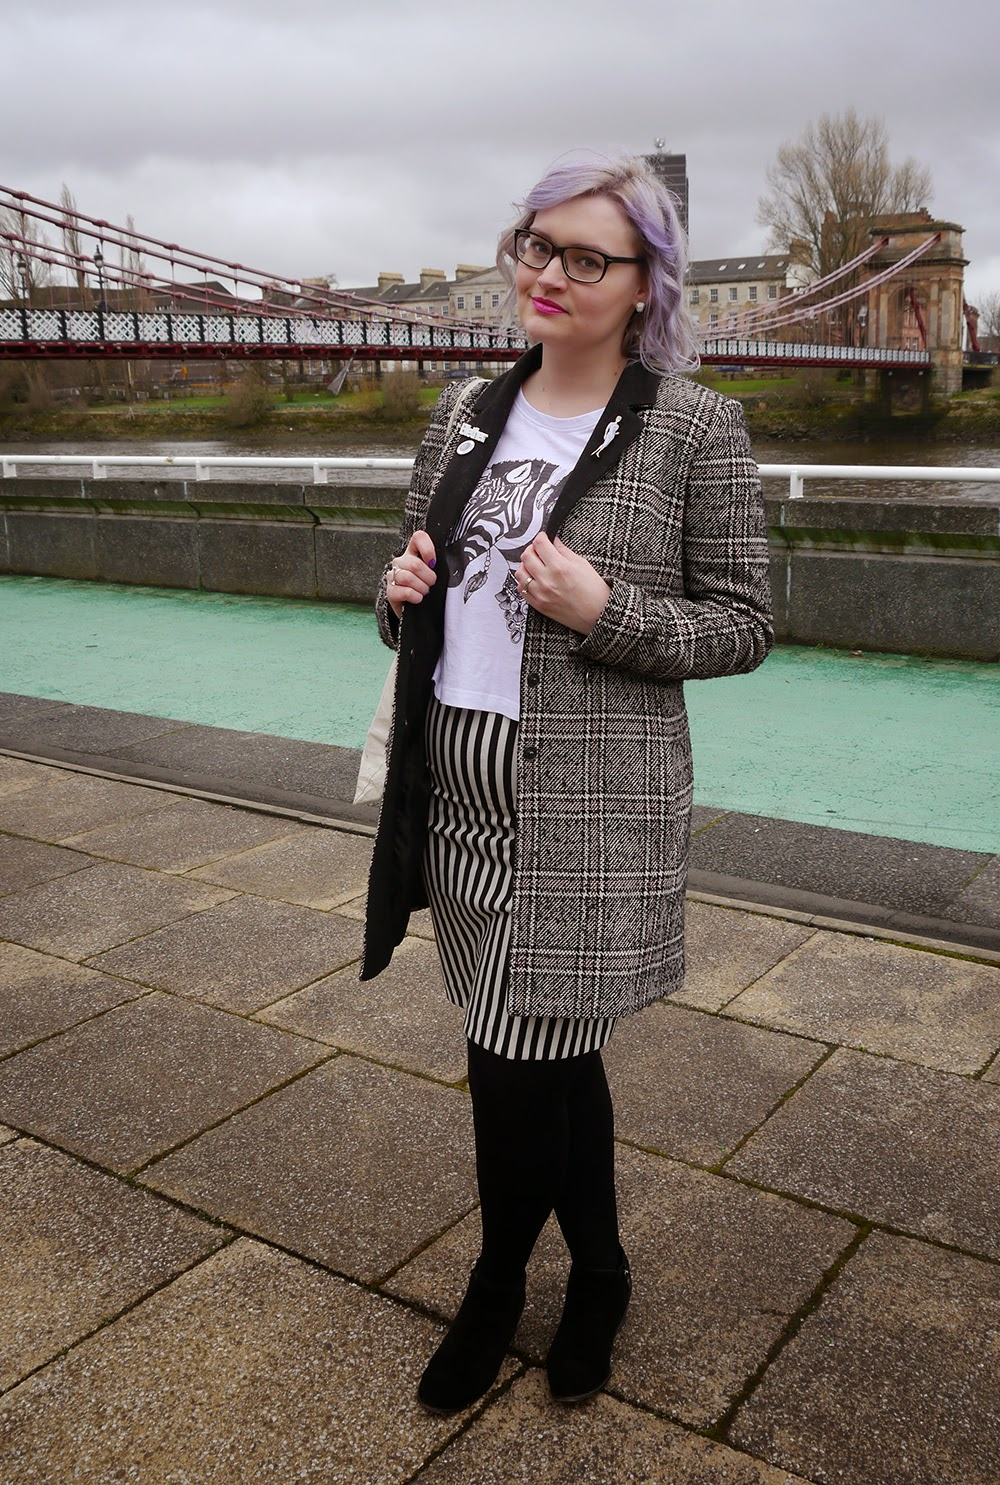 Glasgow, merchant city, the Clyde, plaid, Scottish blogger, style blog, blether, violet hair, purple hair, how to, stripes, SS15, OOTD, blogger